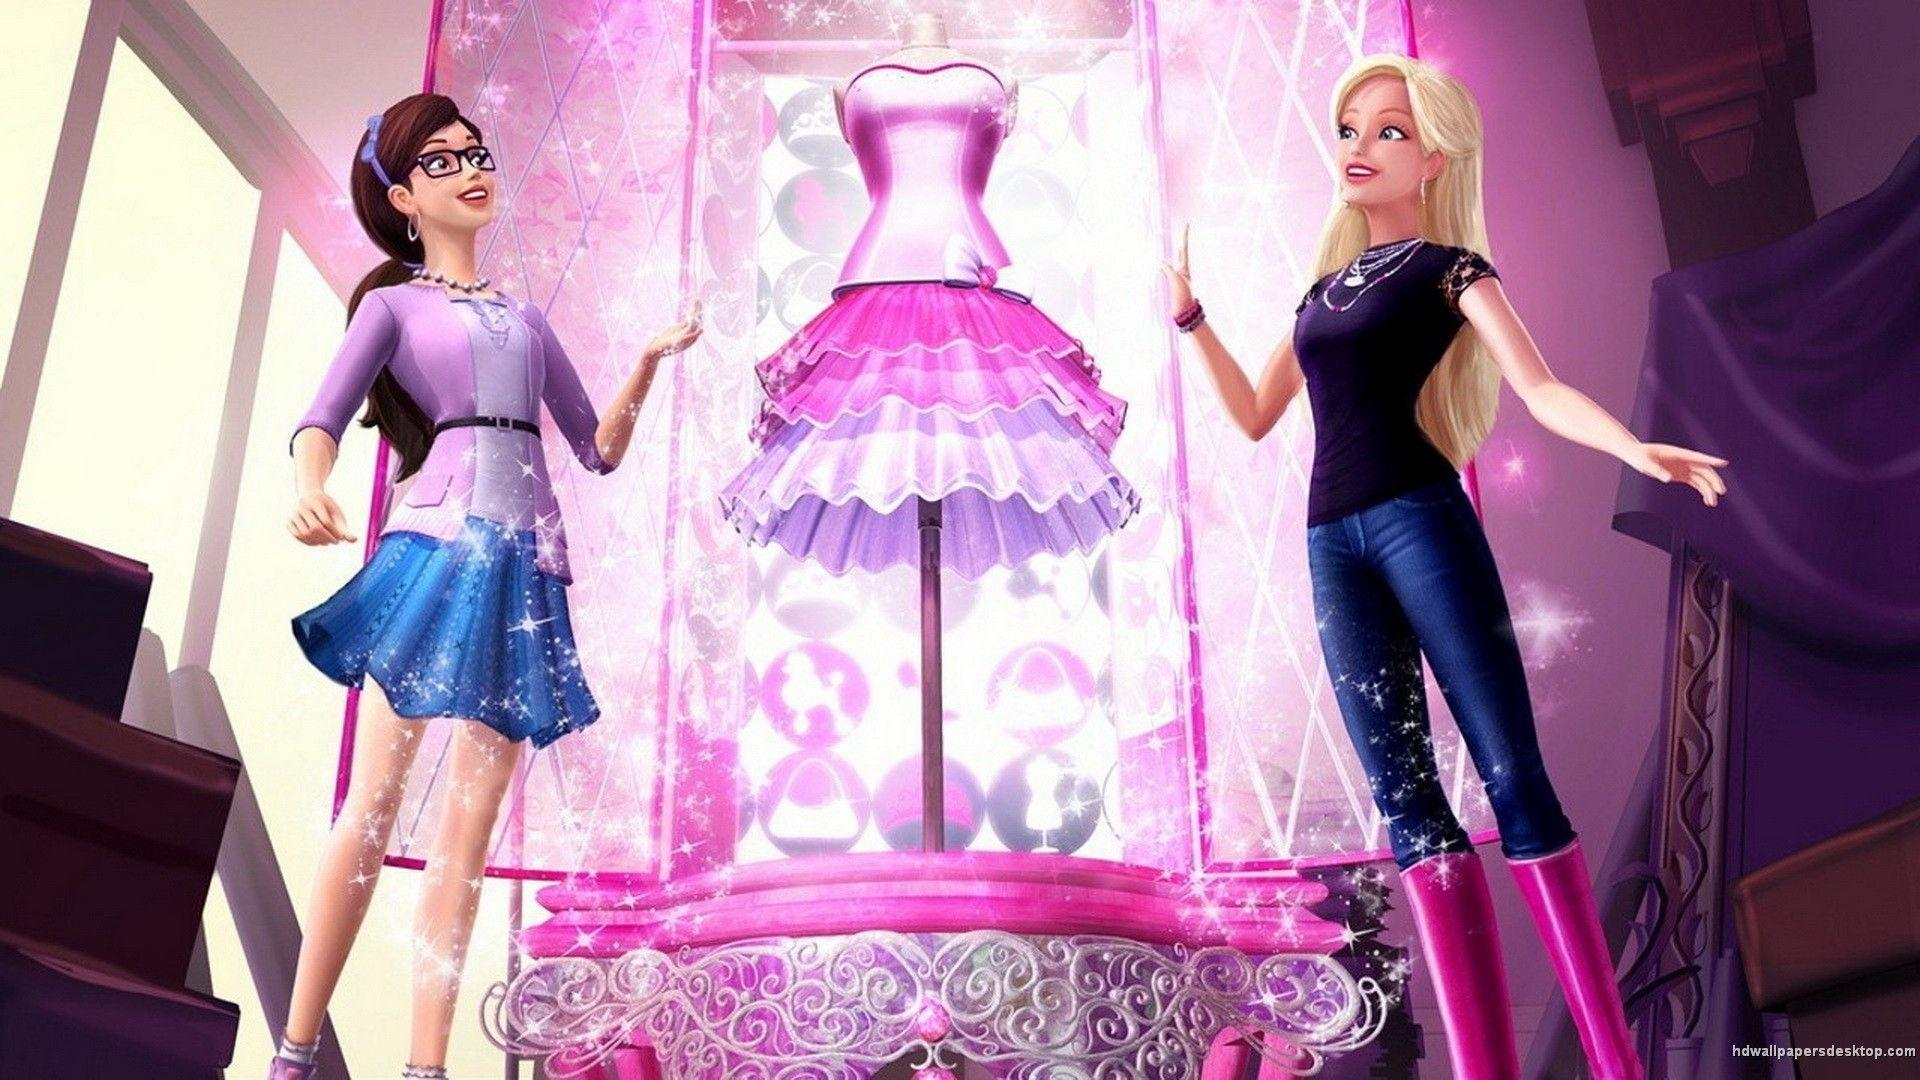 Barbie Wallpaper - MixHD wallpapers